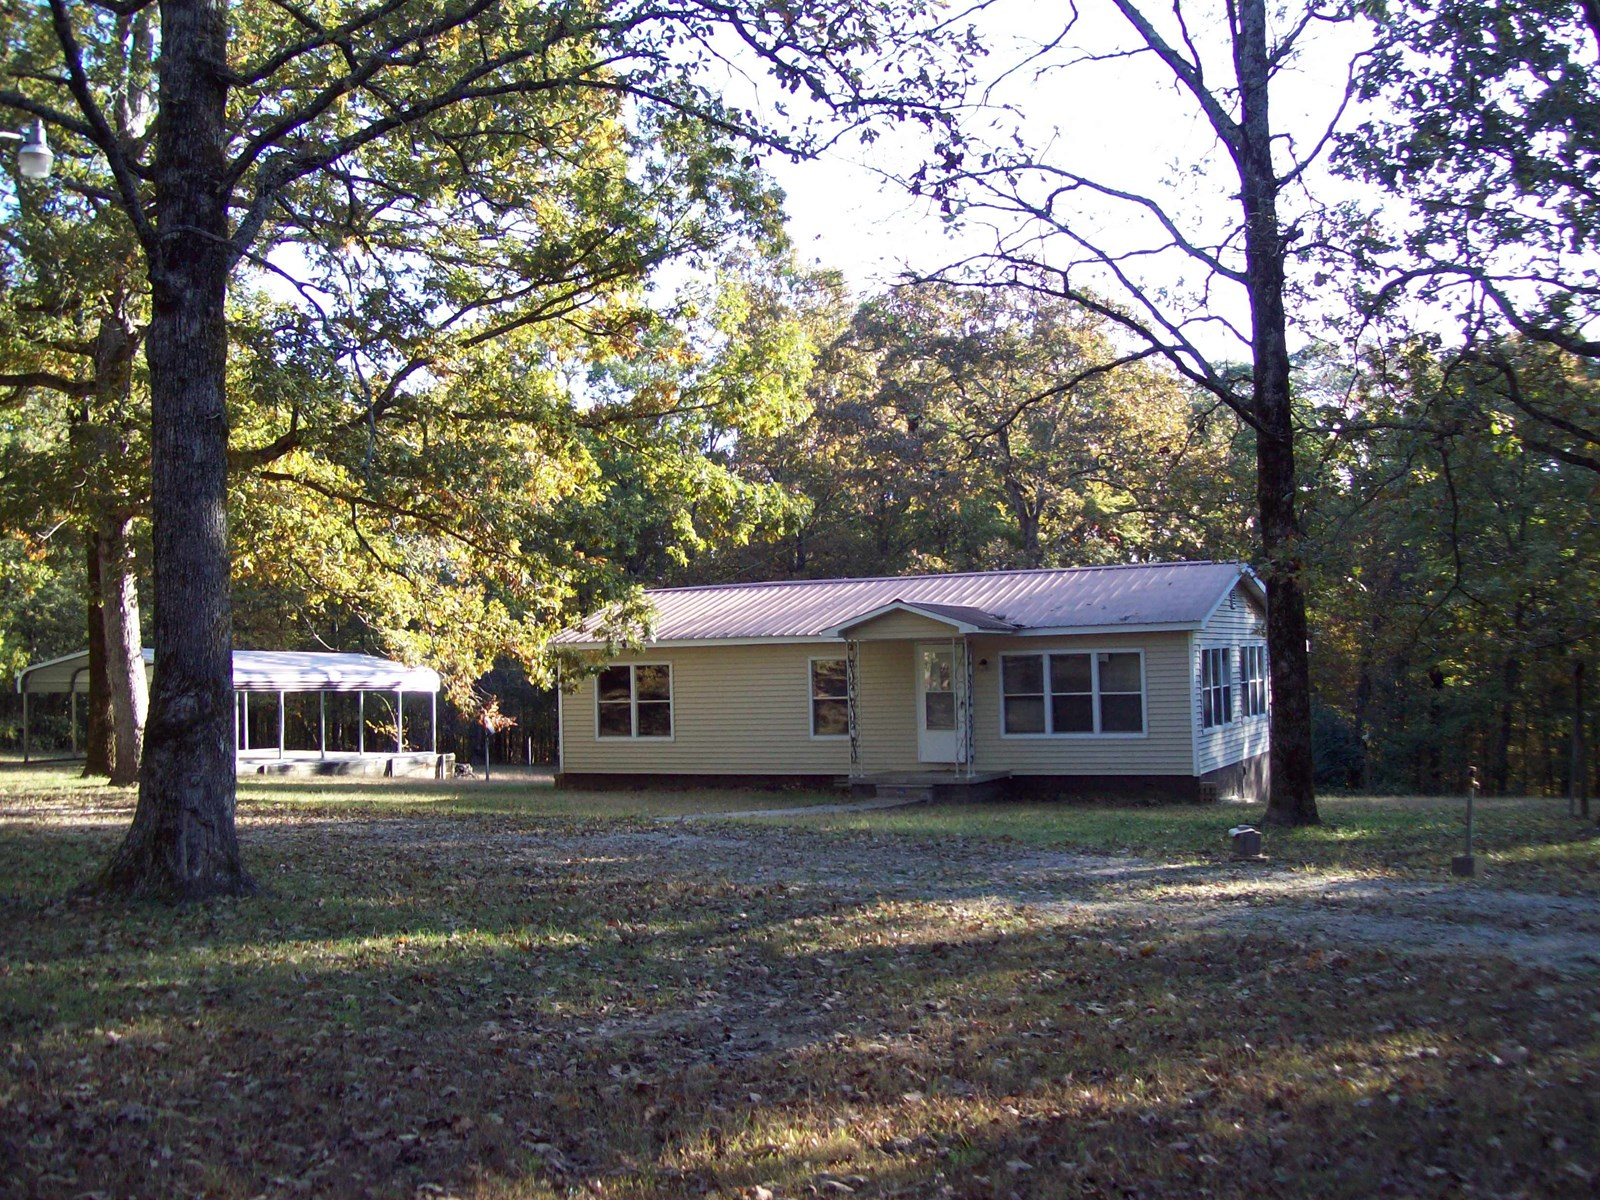 Home on 3.5 acres at Wappapello Lake